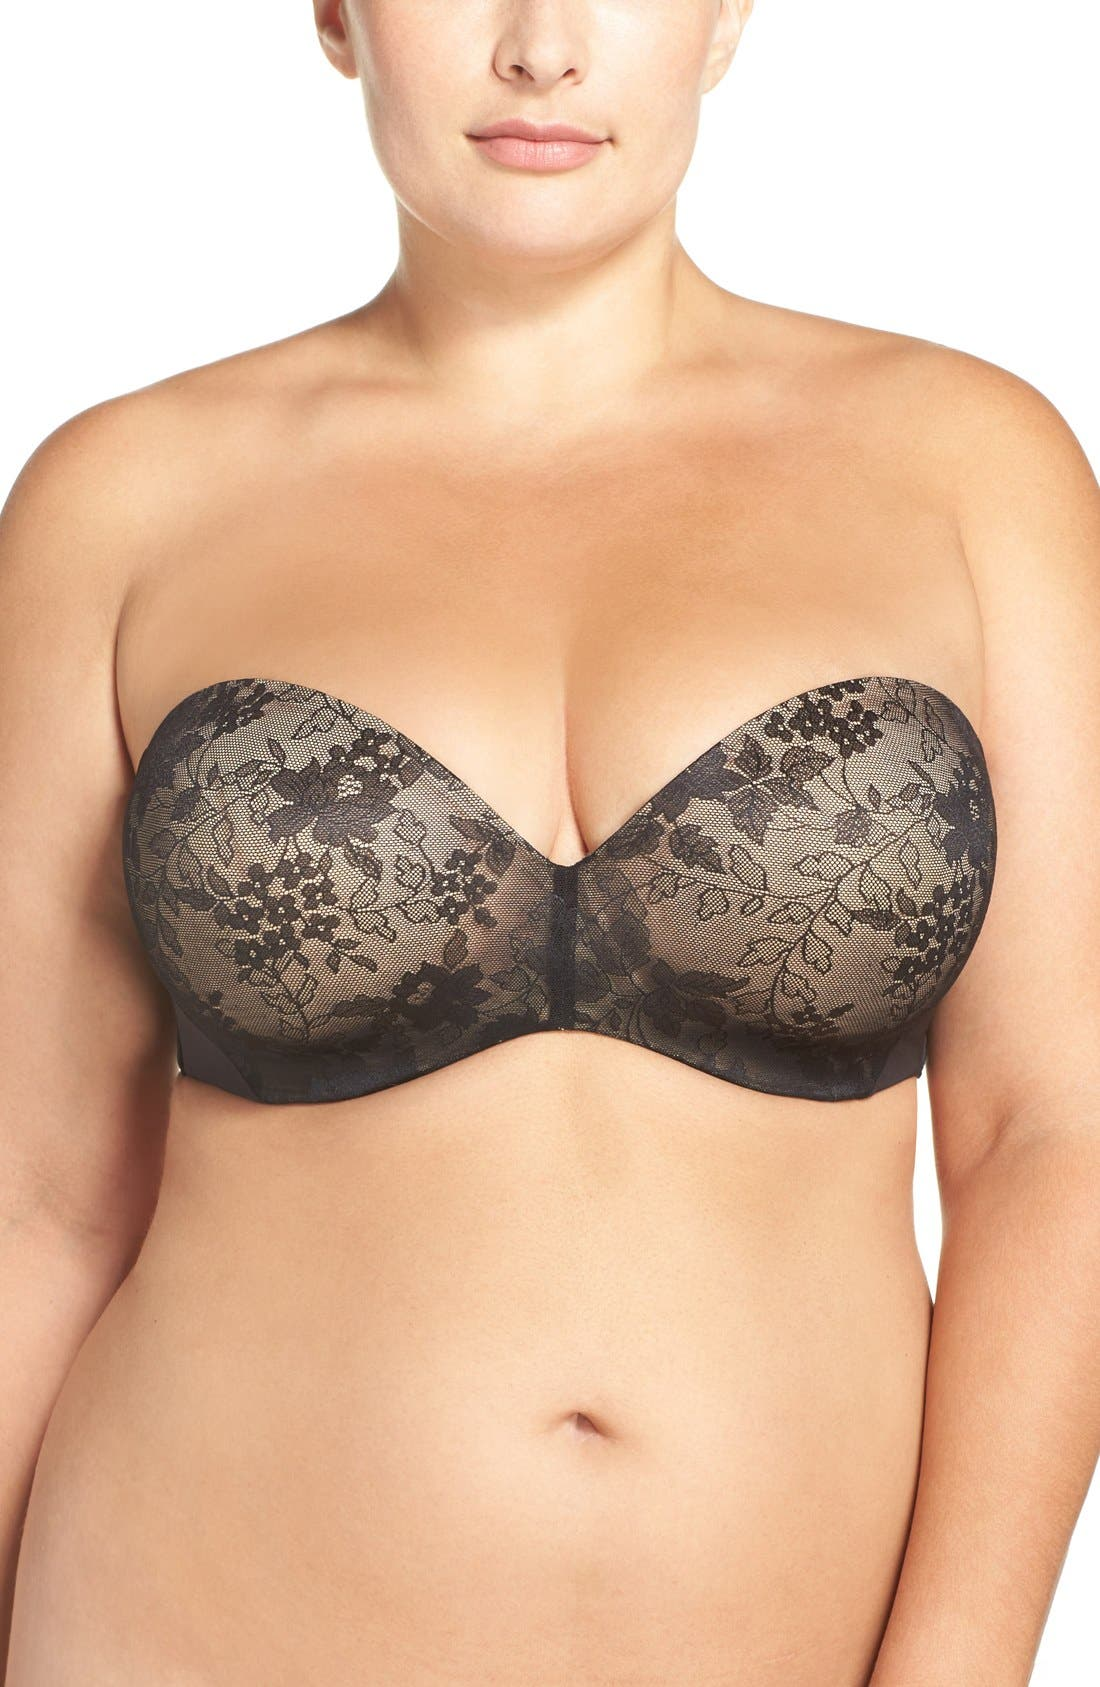 Strapless Underwire Push-Up Bra,                             Main thumbnail 1, color,                             001